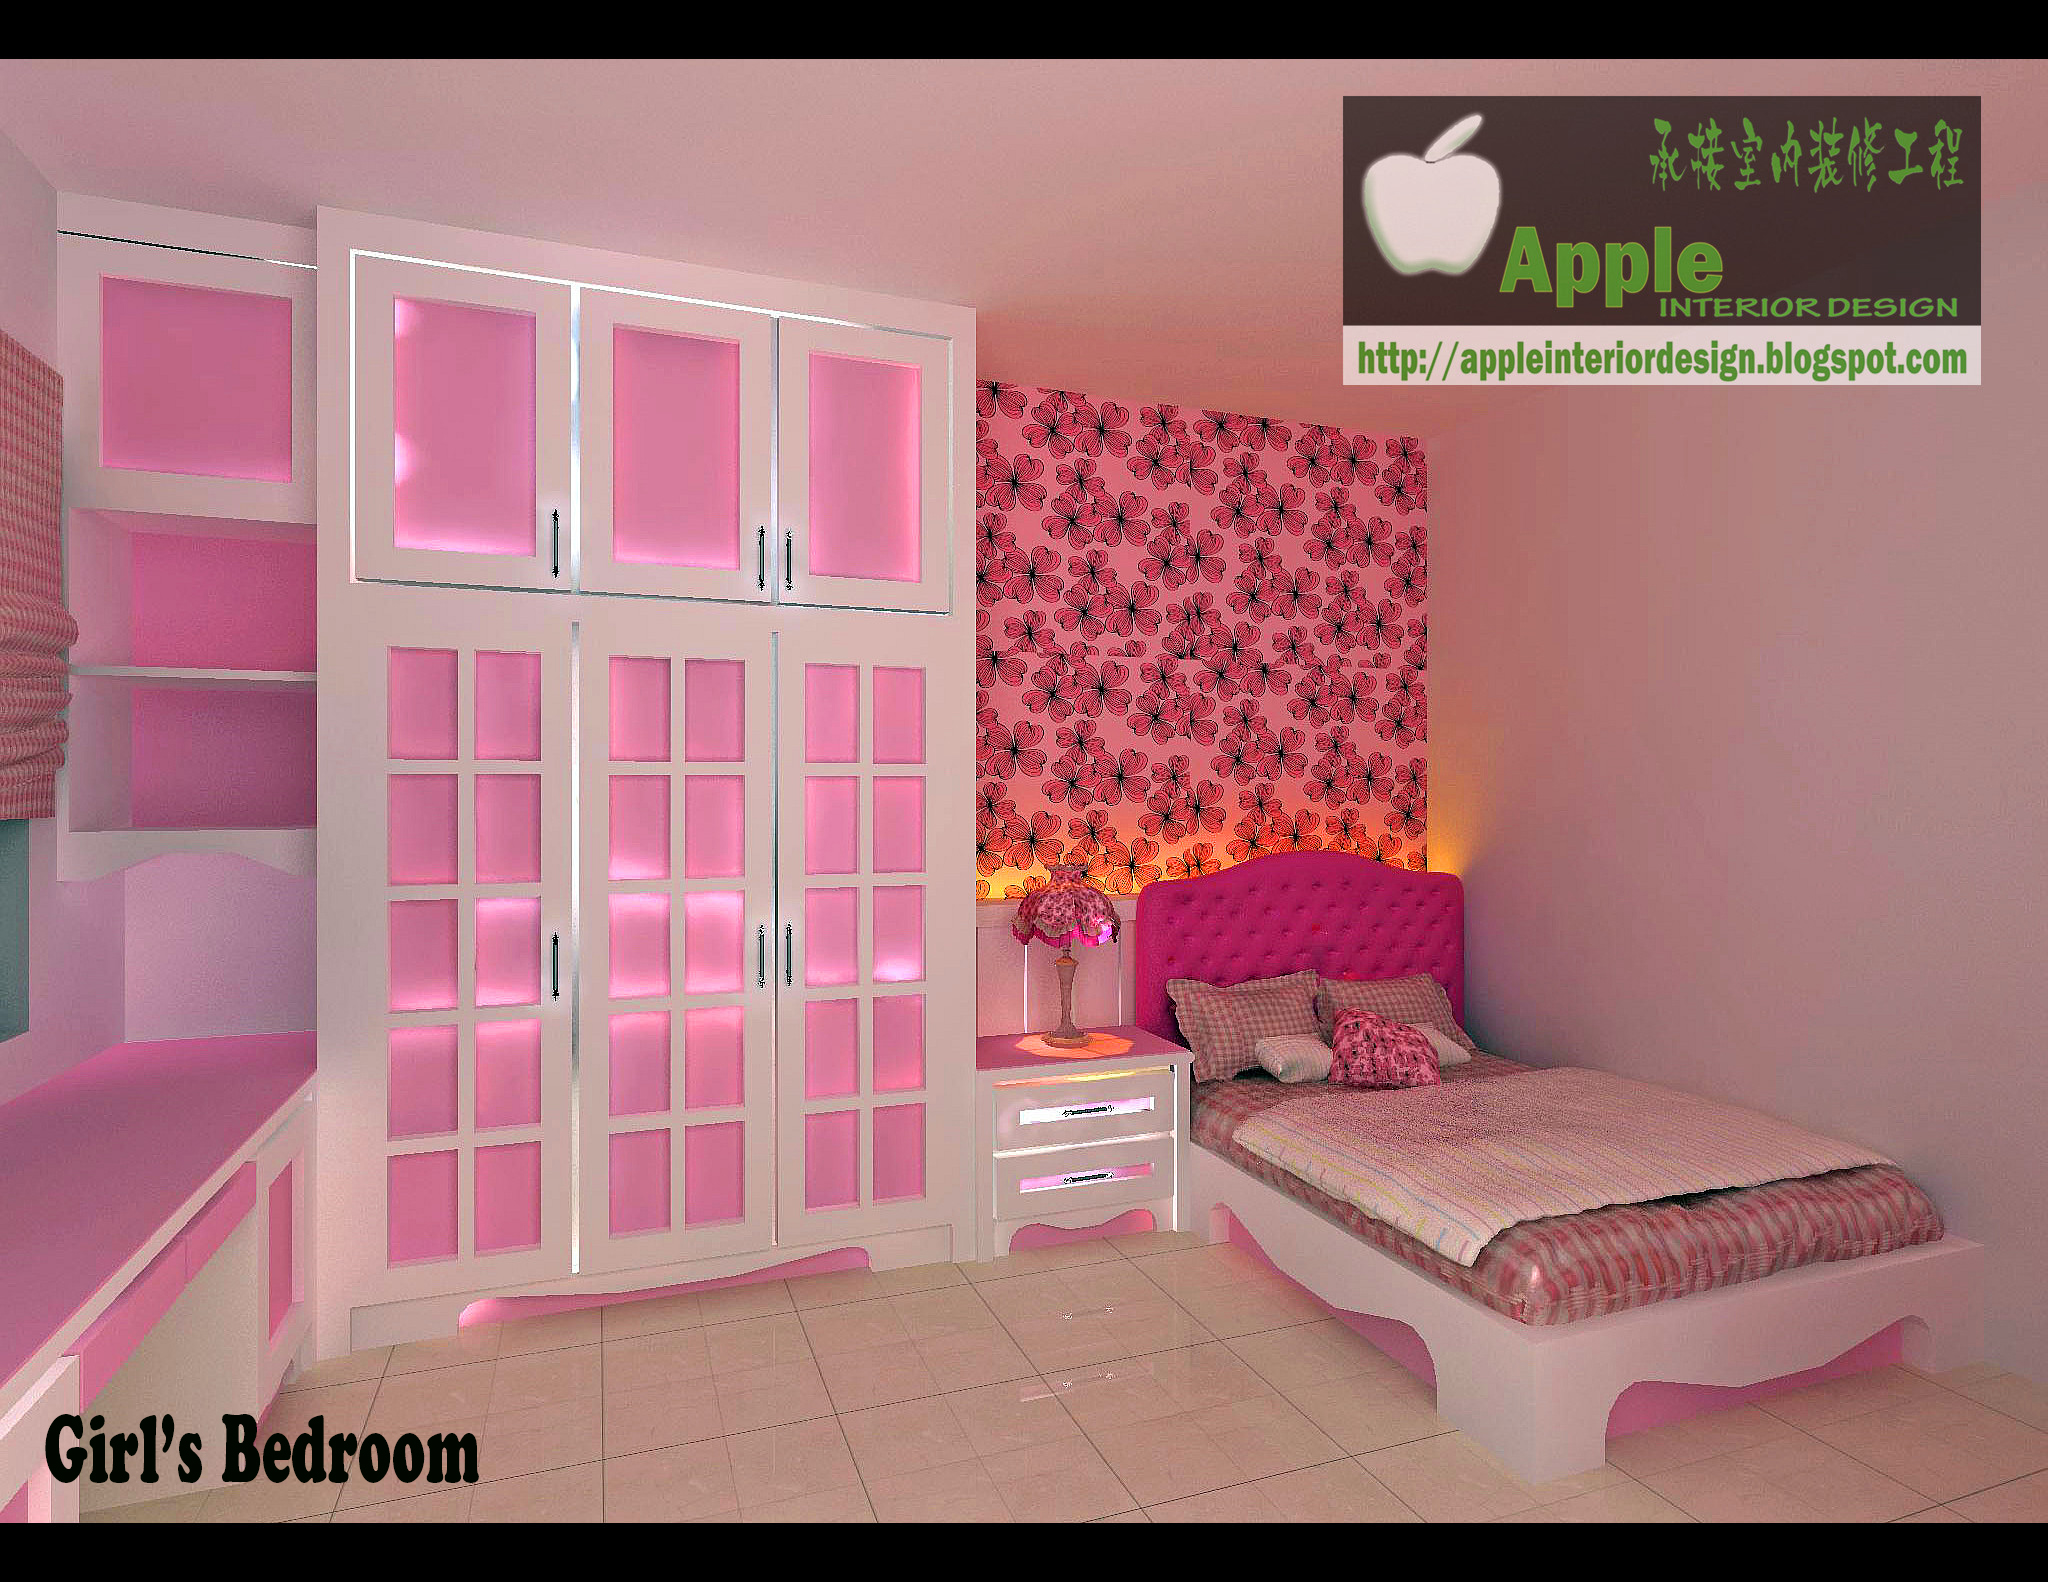 Red Apple Bedroom Furniture Kids Room Design Mix Fun With Usability Renof Article